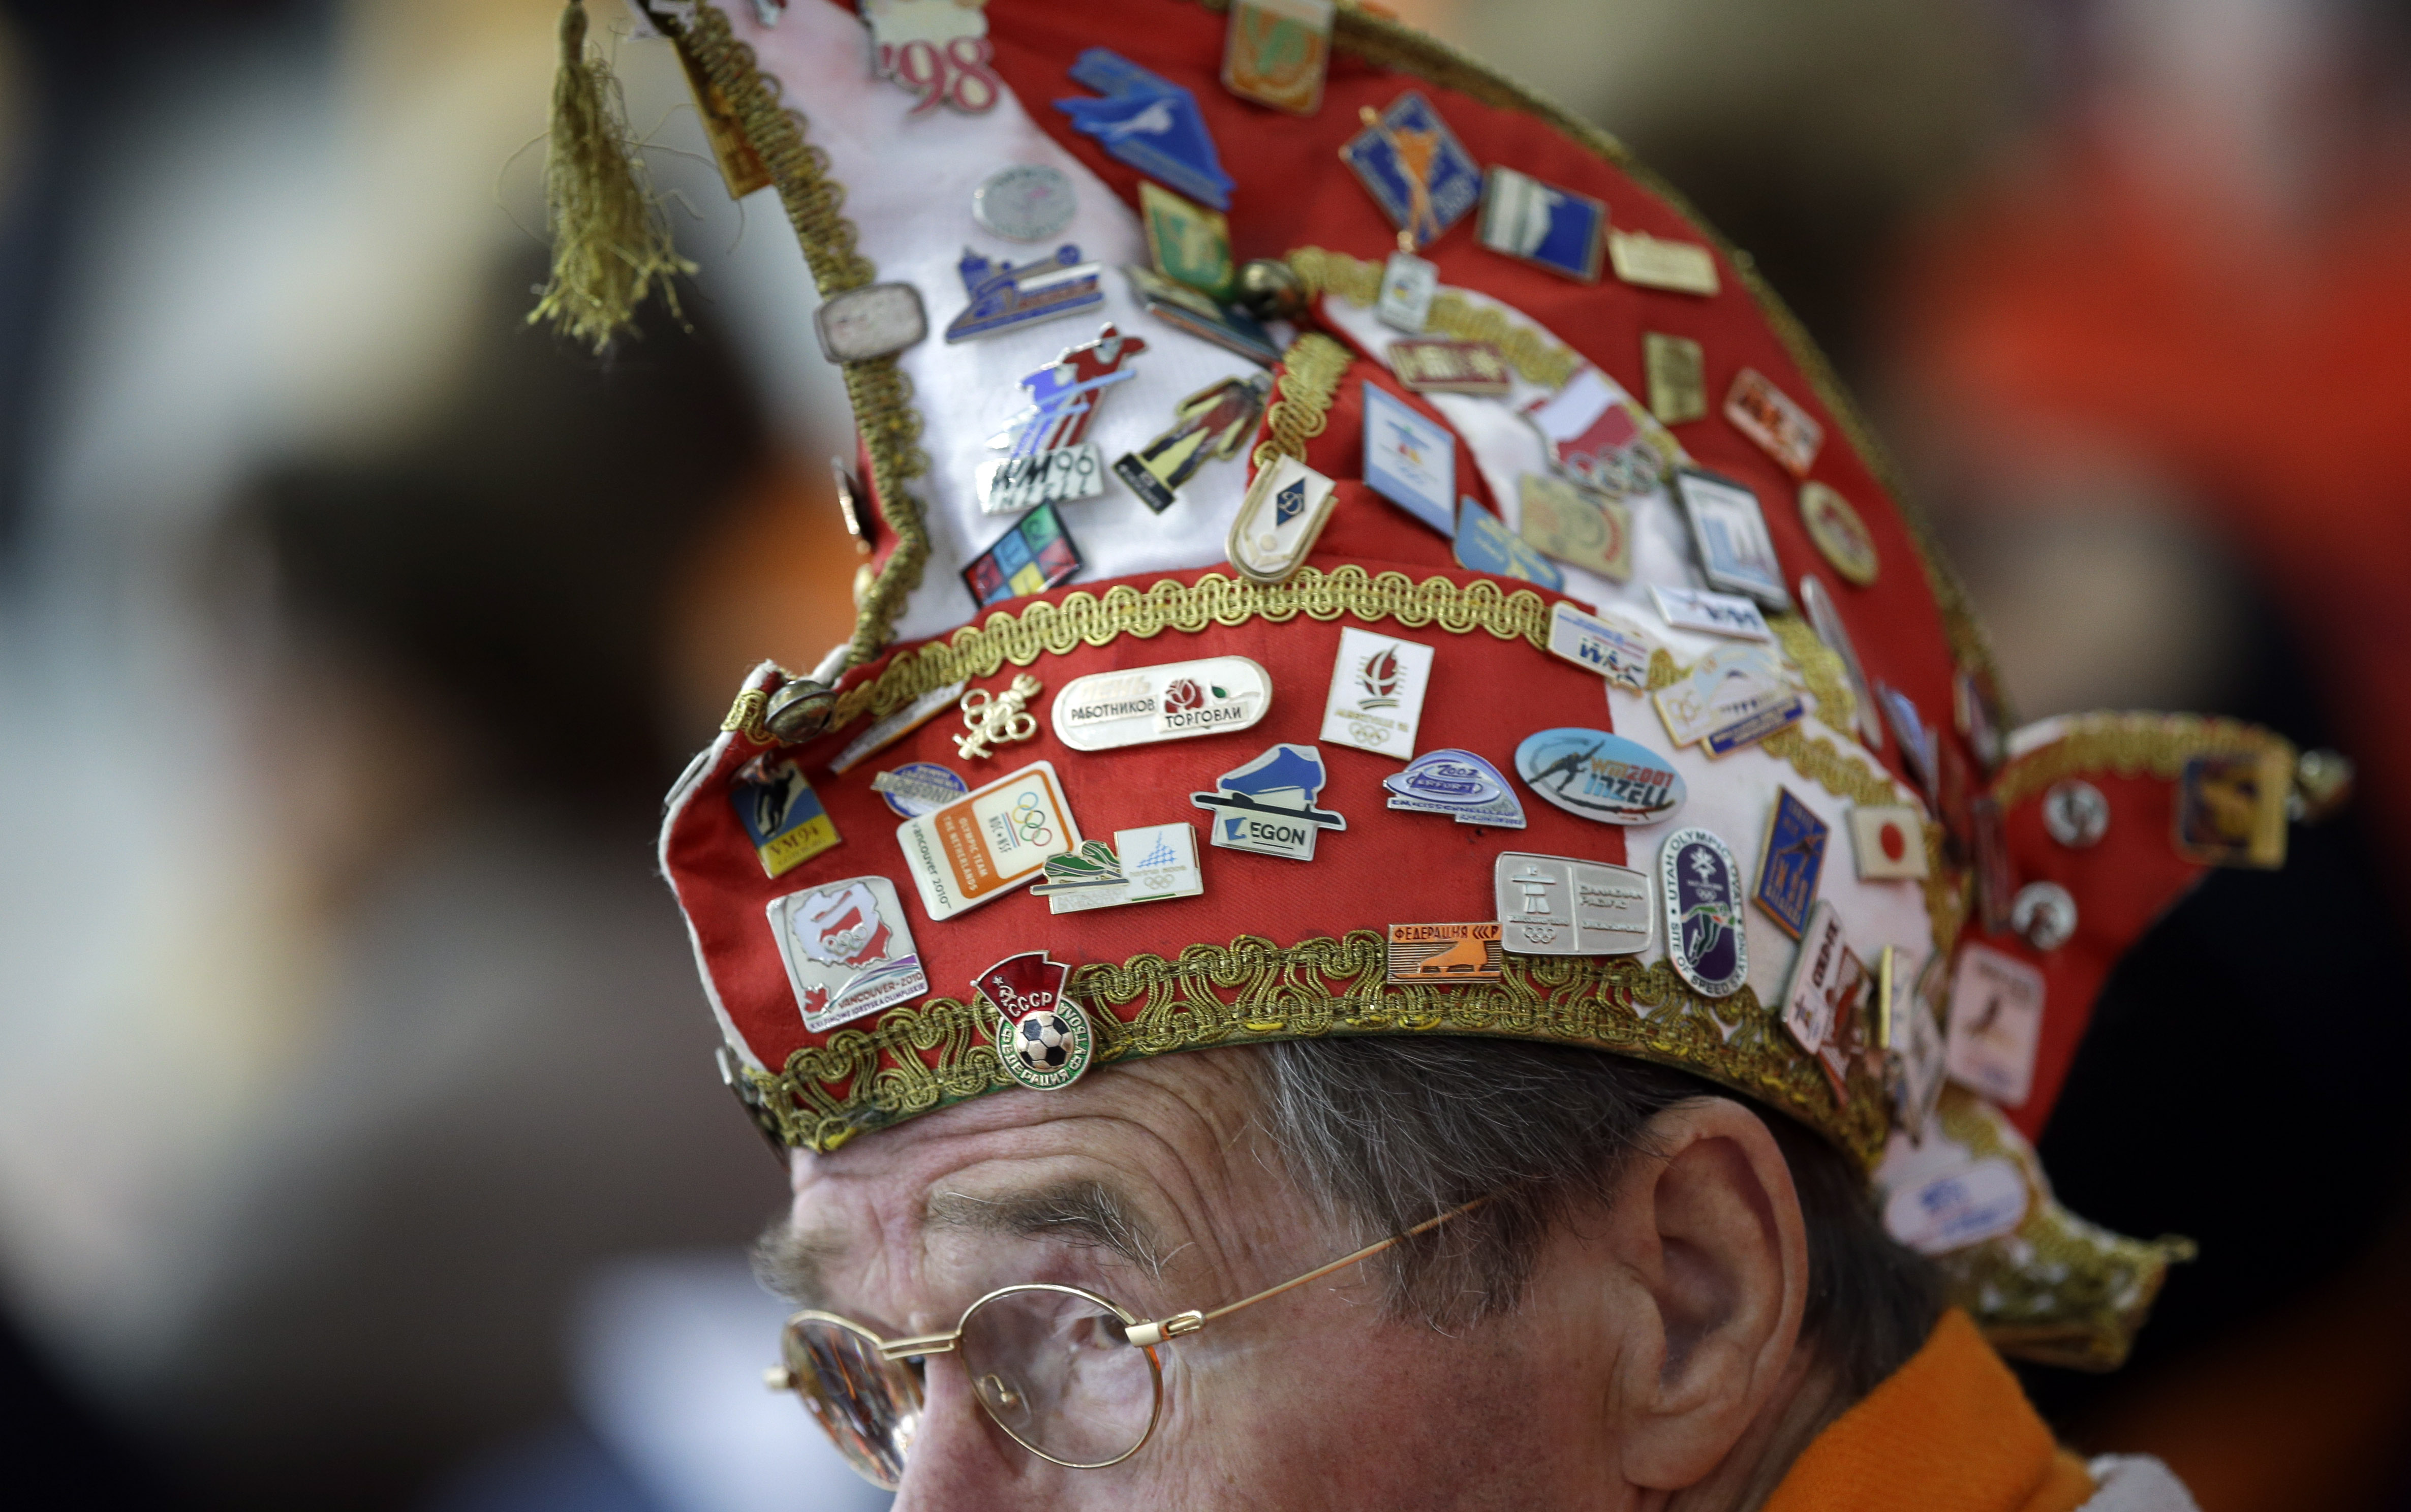 A Dutch skating fan, his hat filled with Olympic pins, watches the women's 1,000-meter speedskating race at the Adler Arena Skating Center during the 2014 Winter Olympics in Sochi, Russia, Thursday, Feb. 13, 2014. (AP Photo/David J. Phillip )